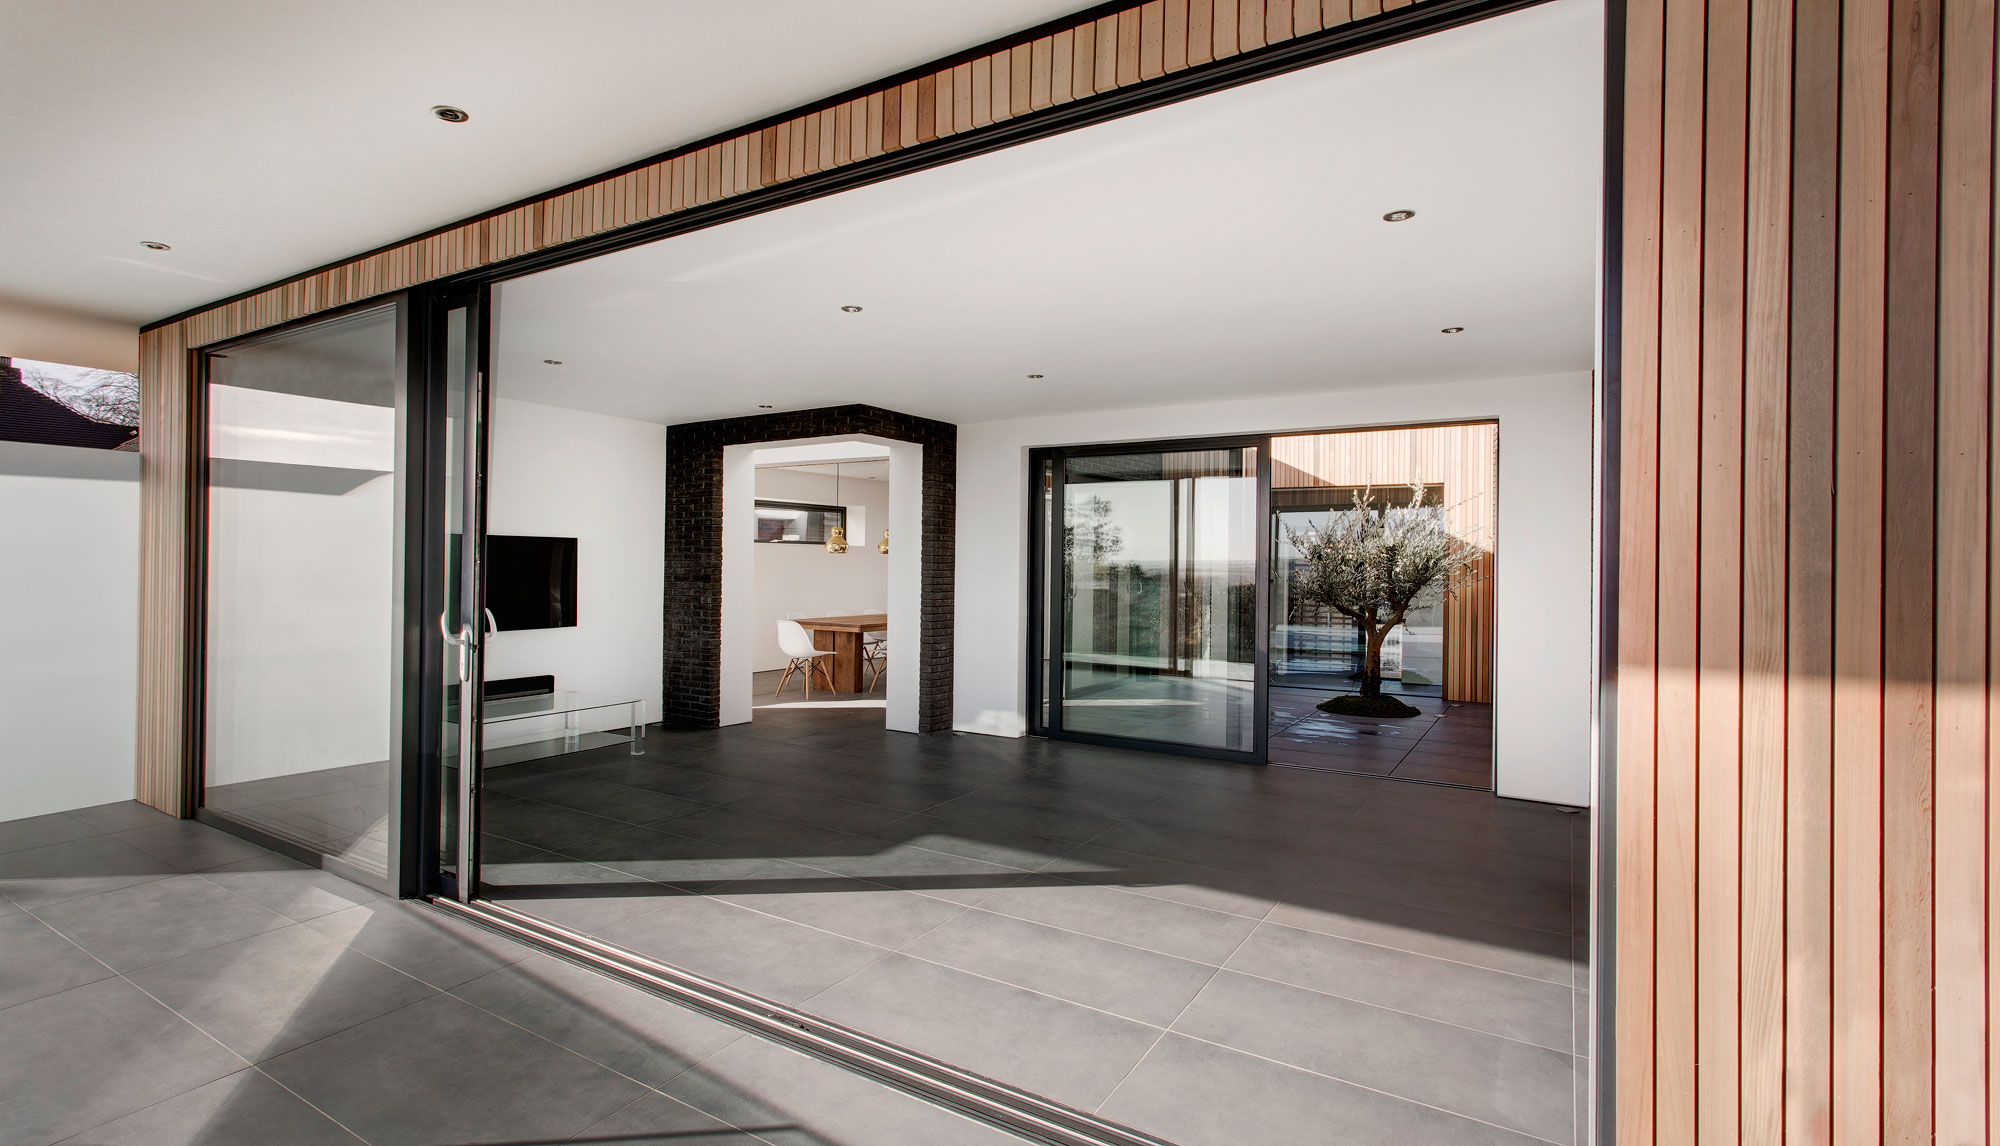 Glass Sliding Doors, Balcony, Living Space, Modern Home in Hampshire, England